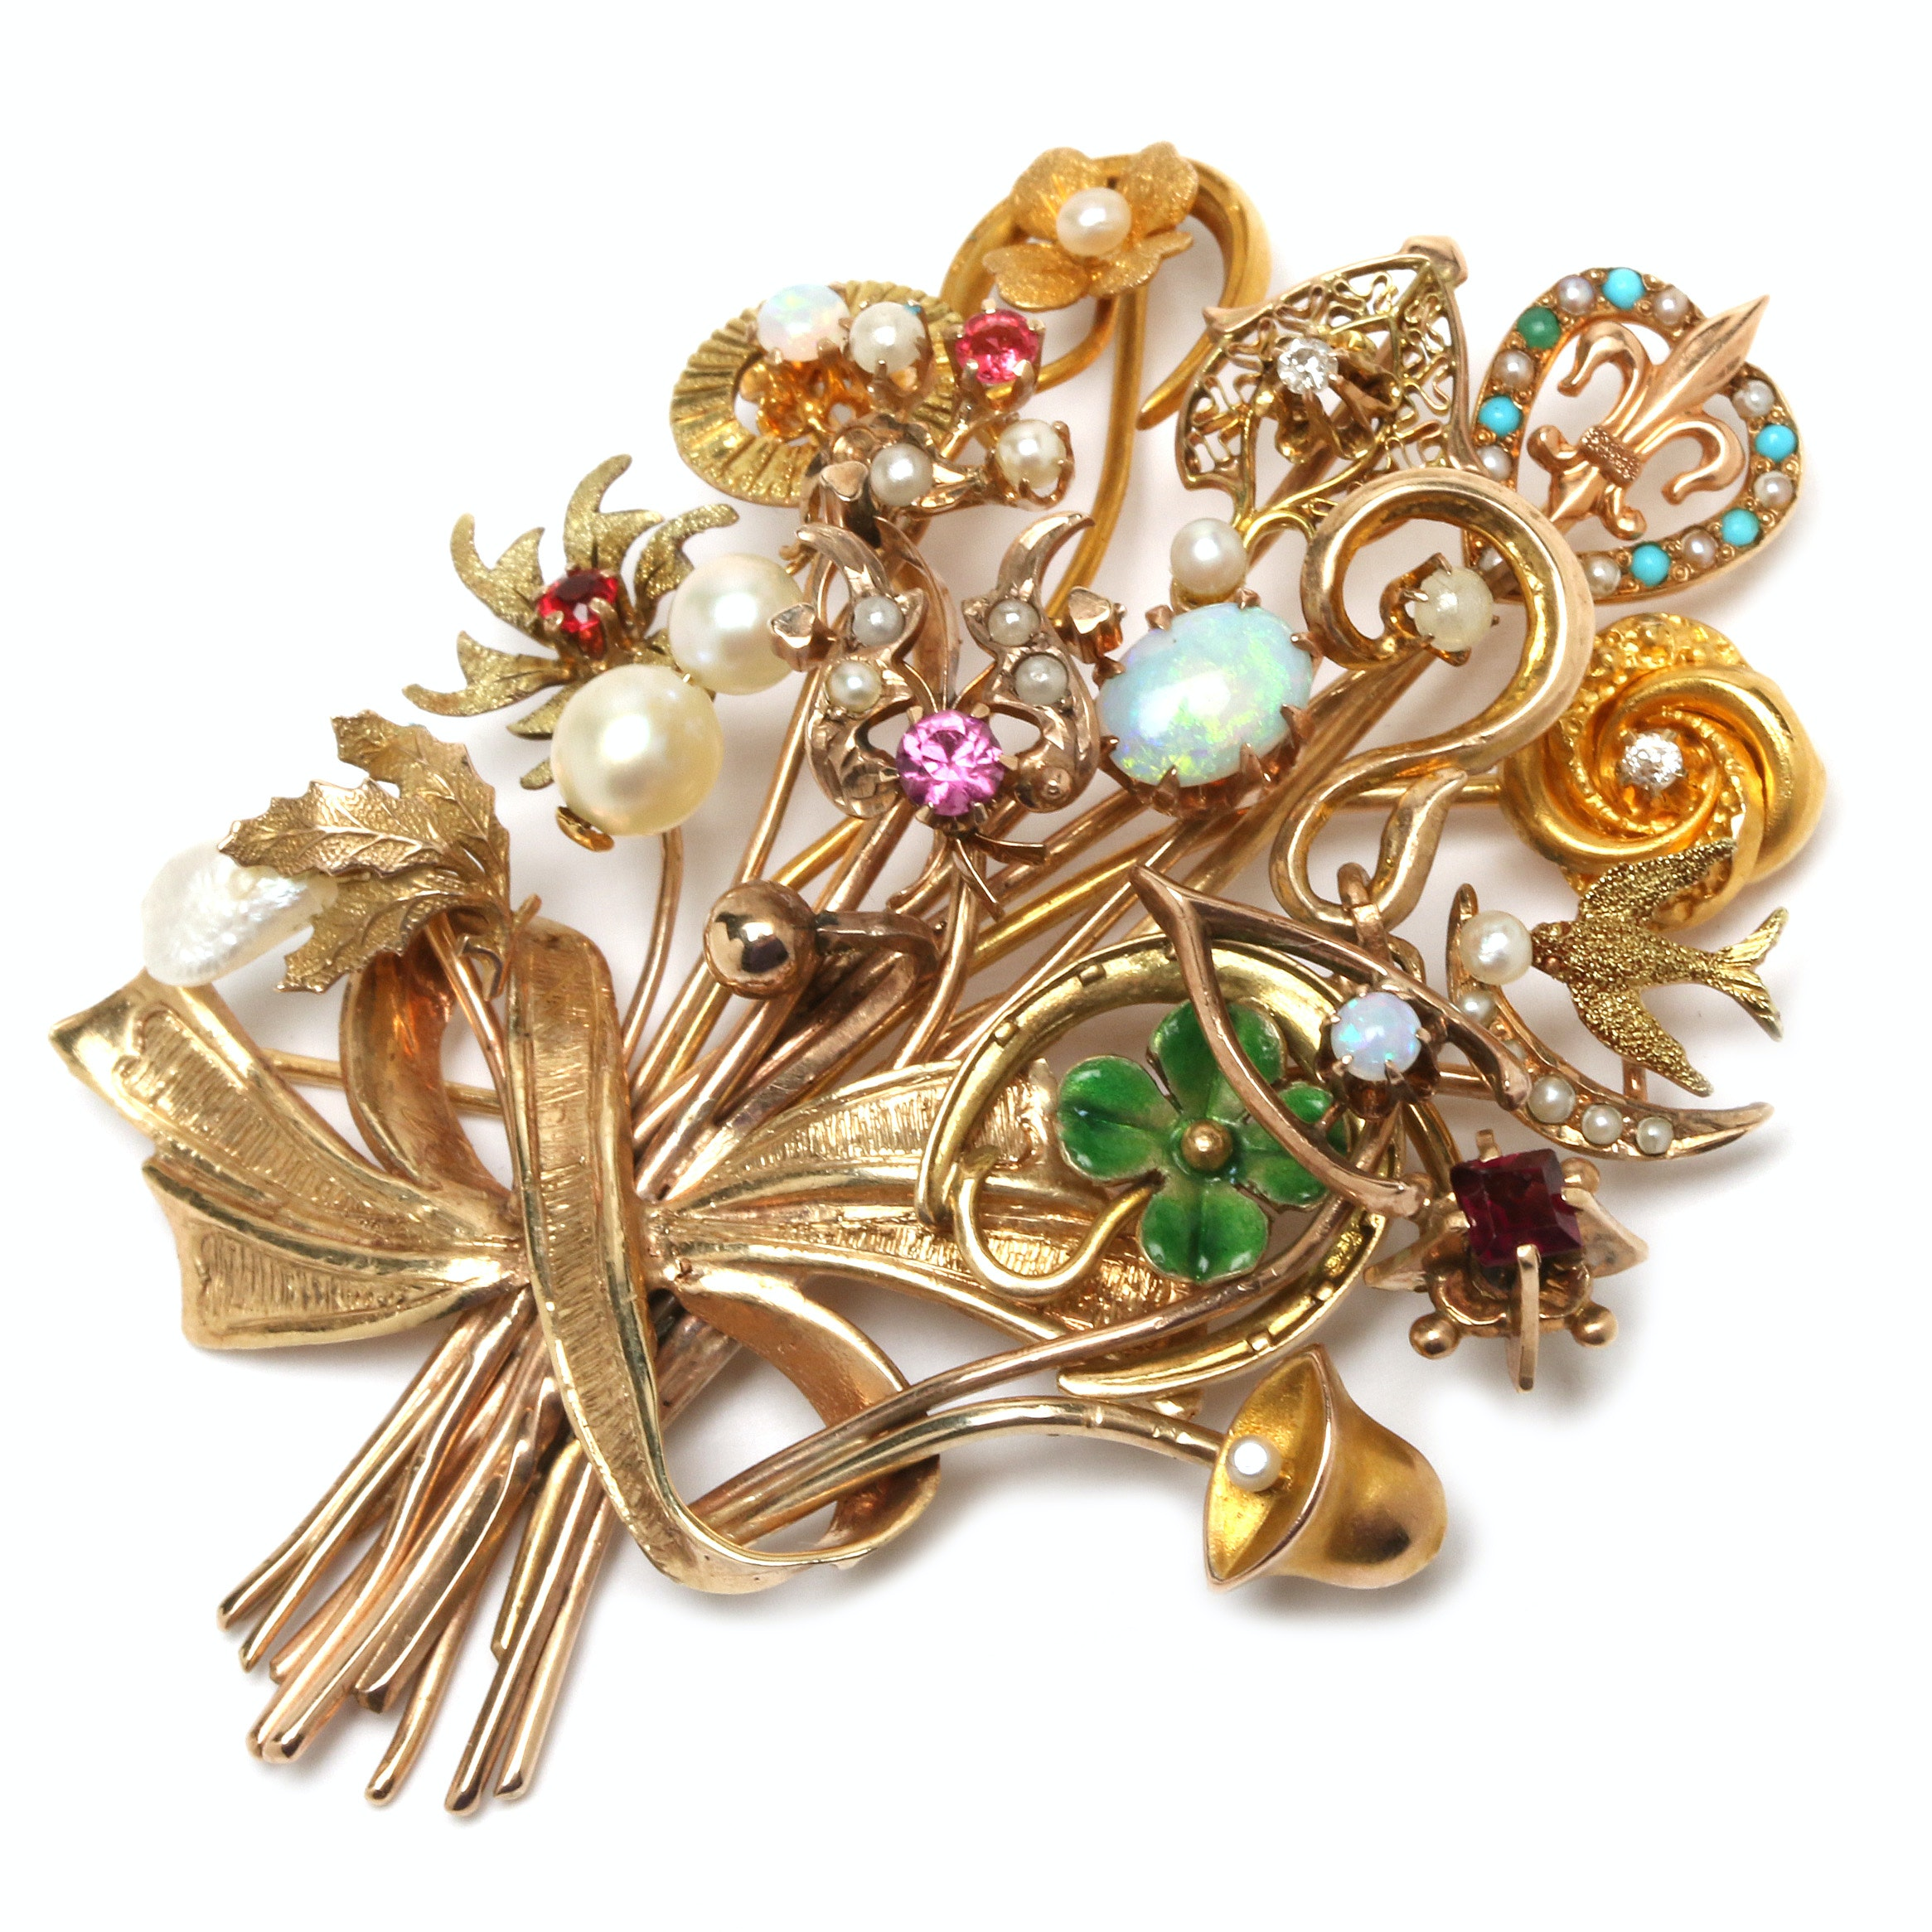 10K, 14K, and 18K Gold Gemstone and Enamel Brooch Including Victorian Components